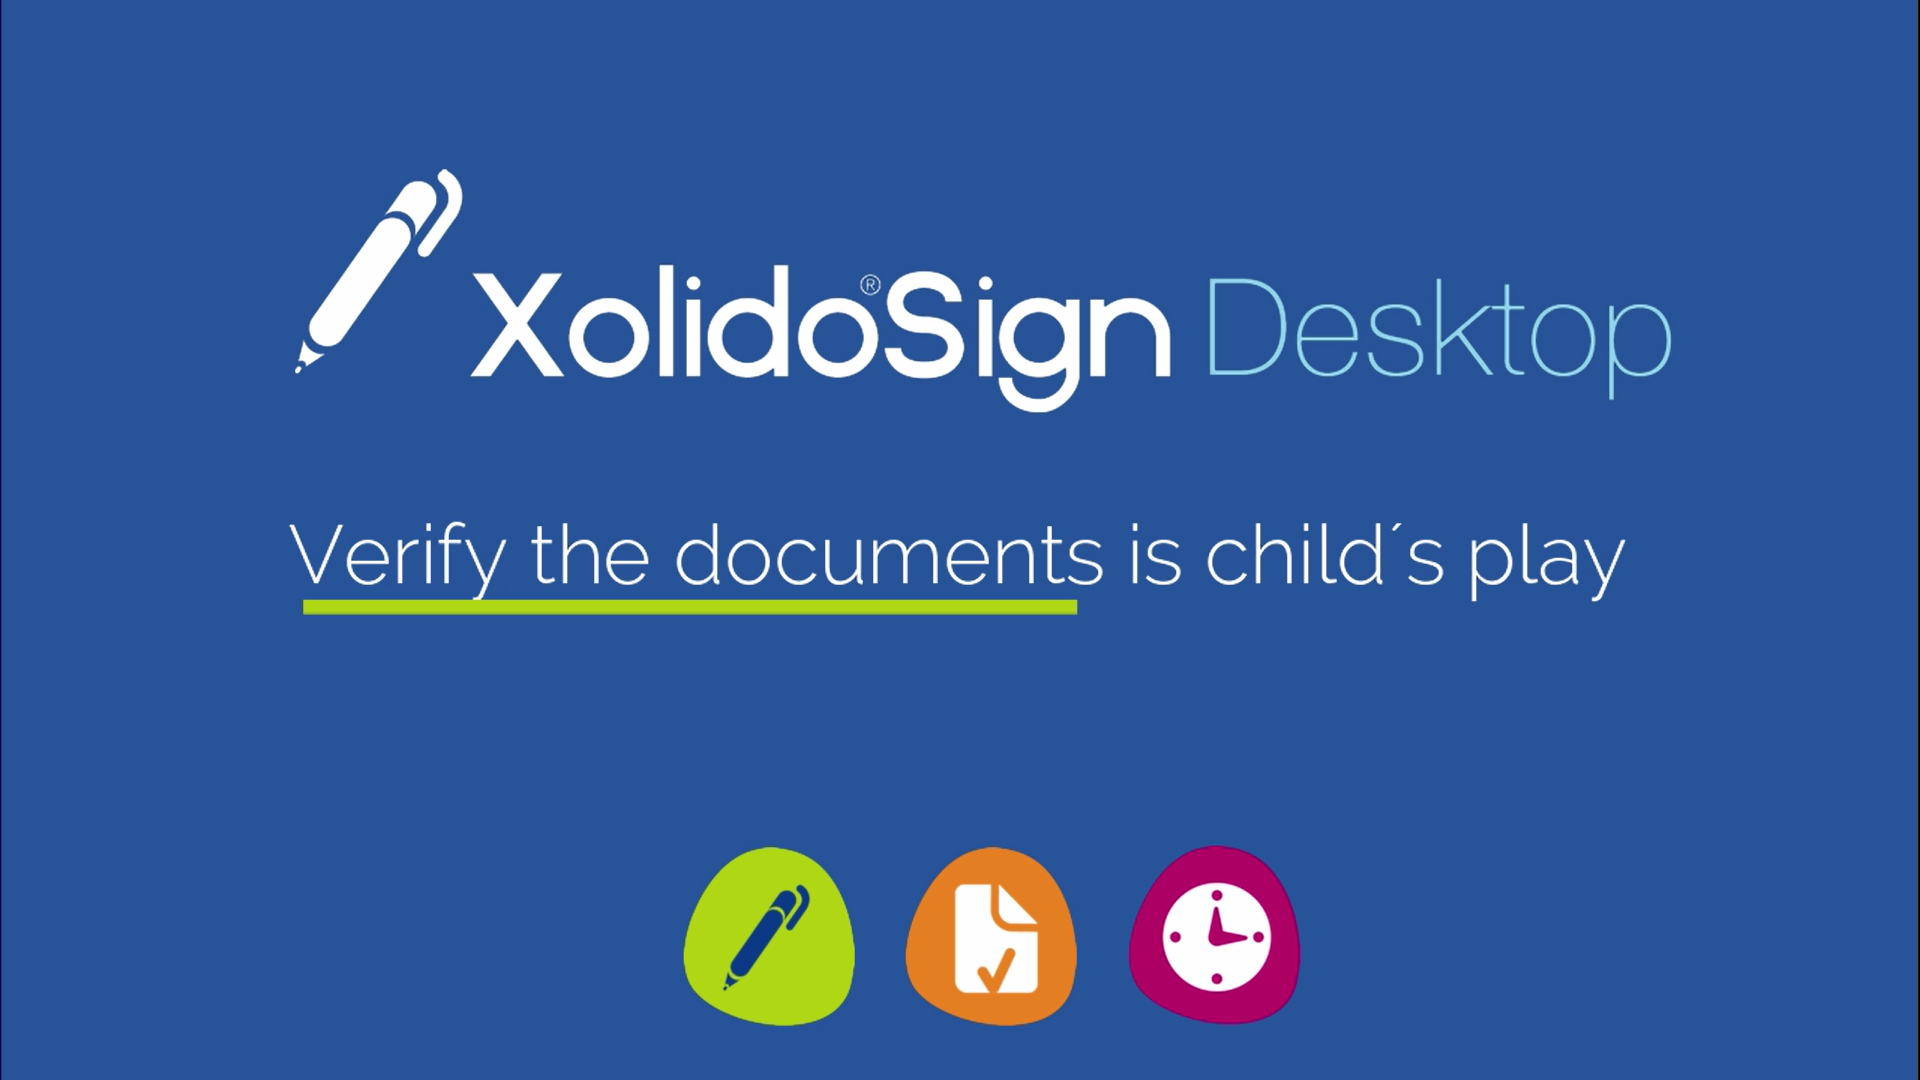 Verification of documents with Xolido®Sign Desktop